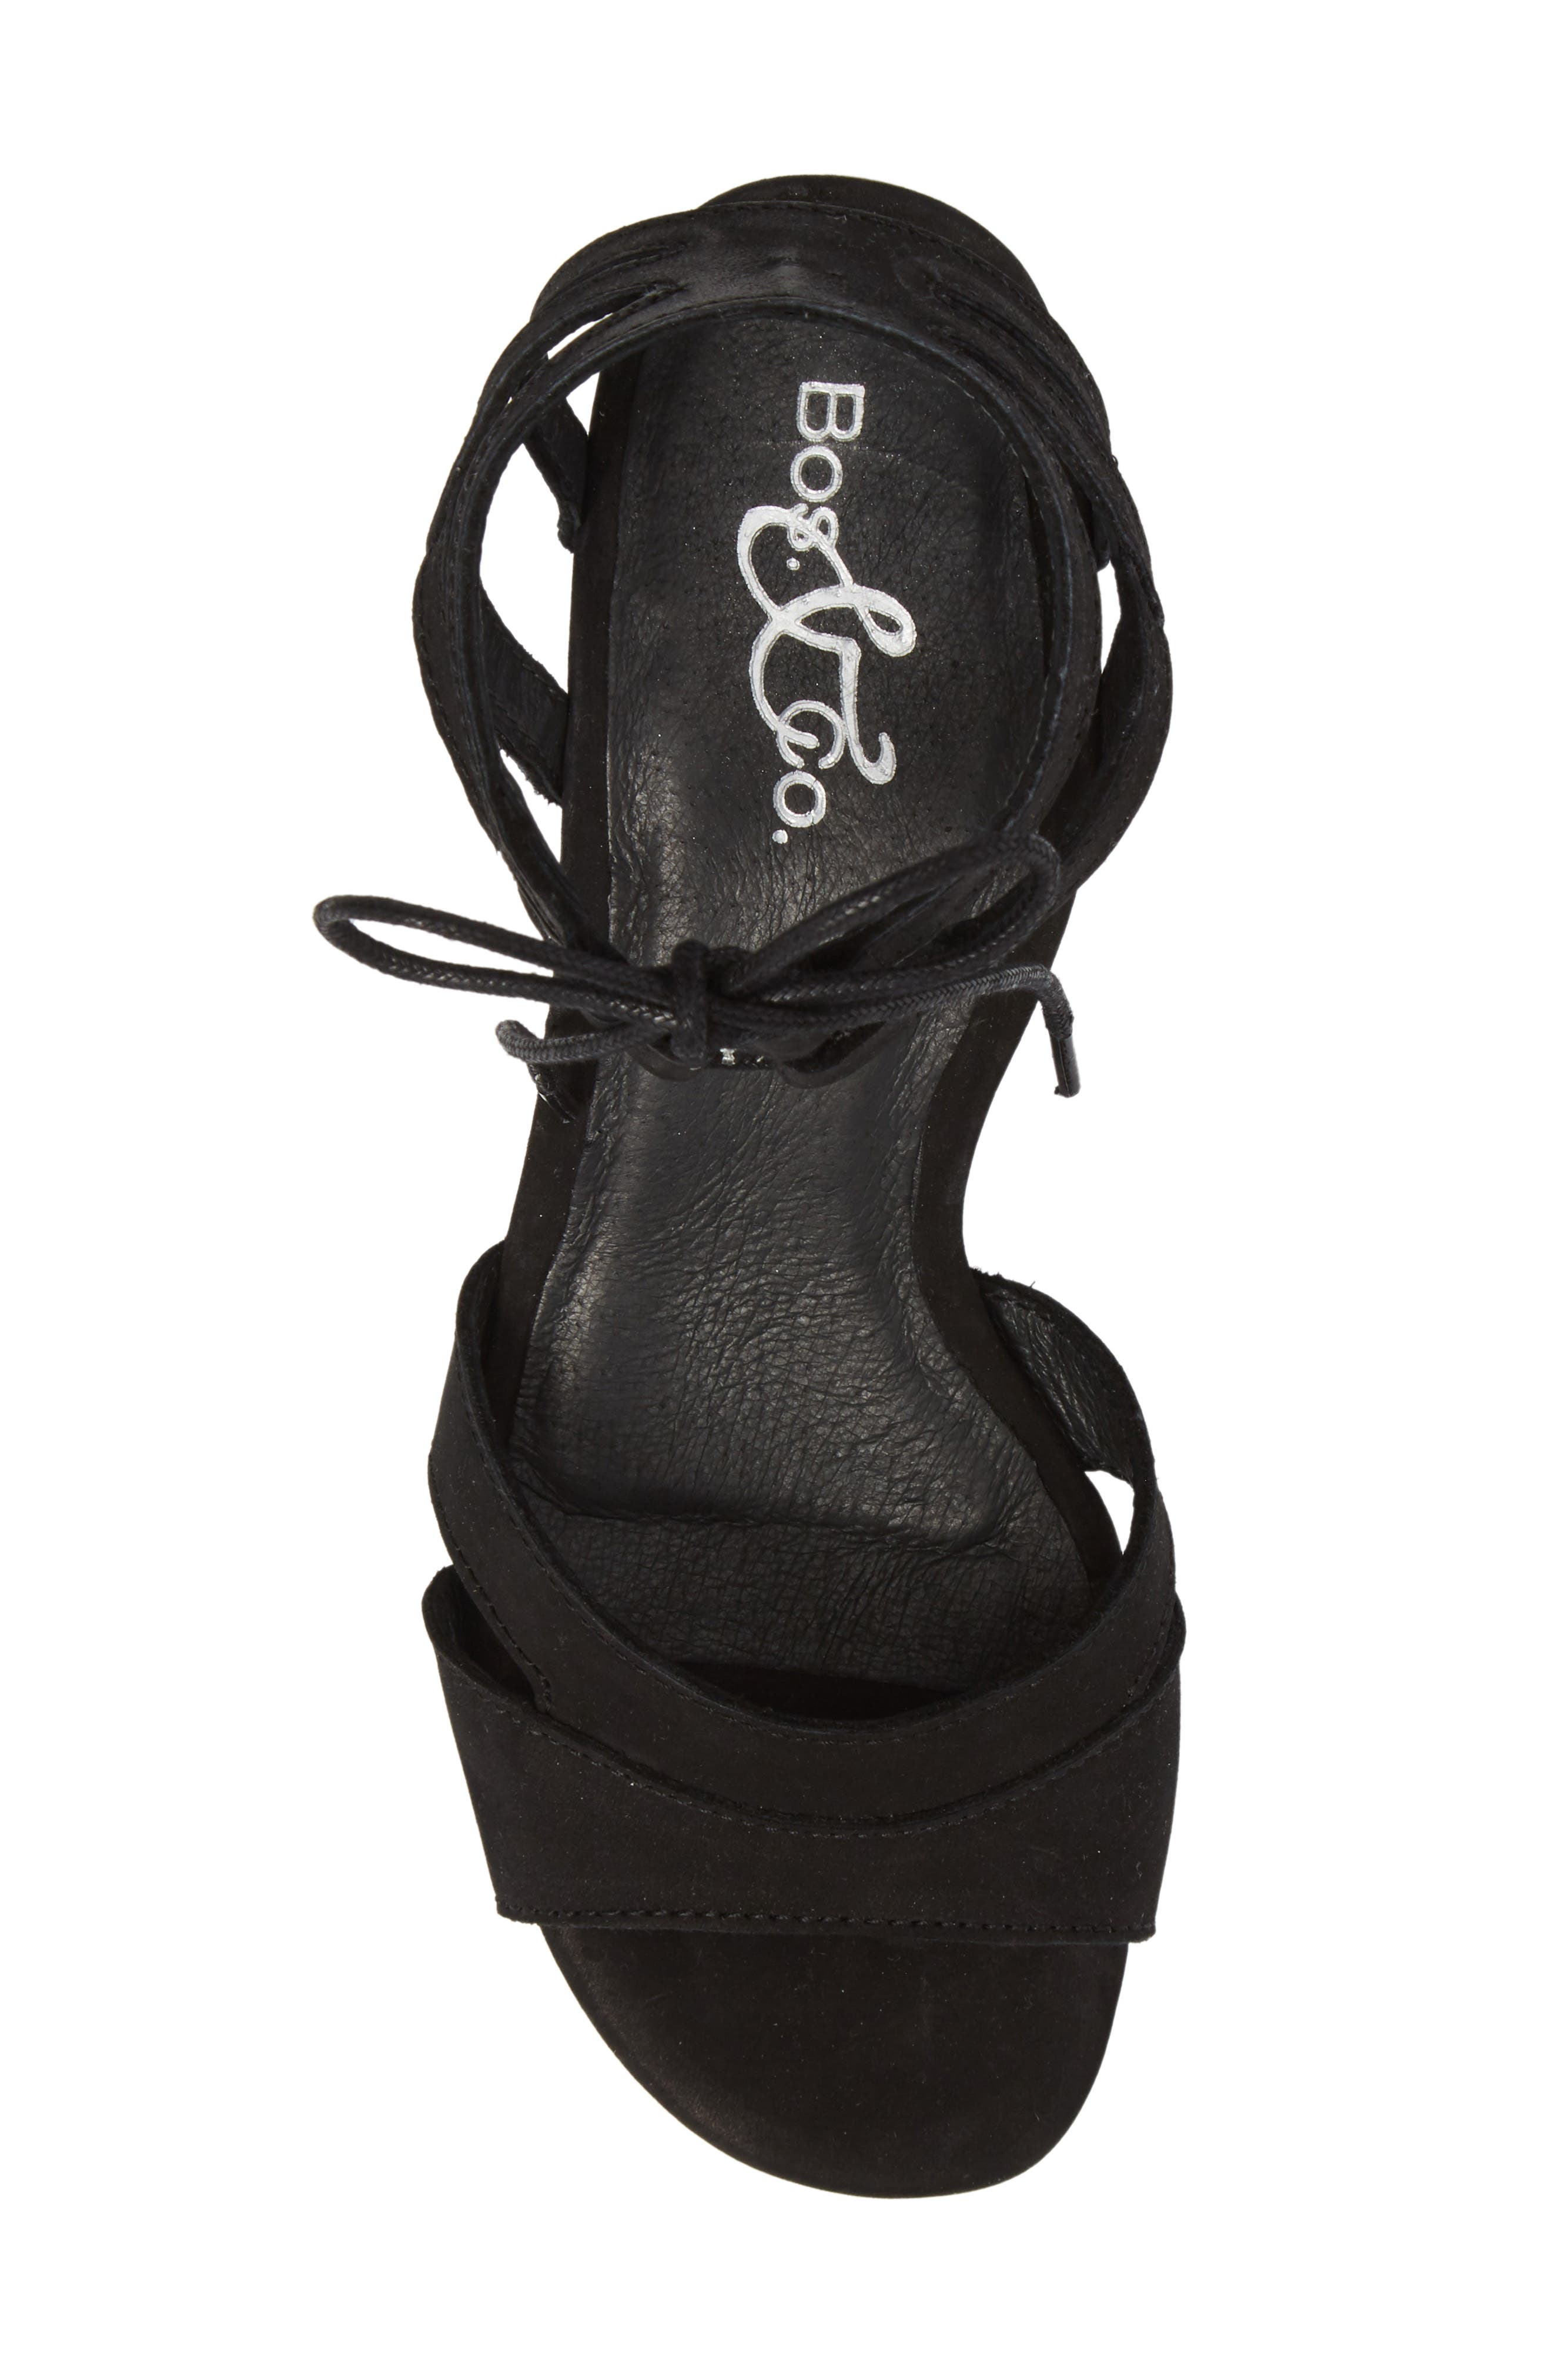 Zorita Sandal,                             Alternate thumbnail 5, color,                             BLACK NUBUCK LEATHER